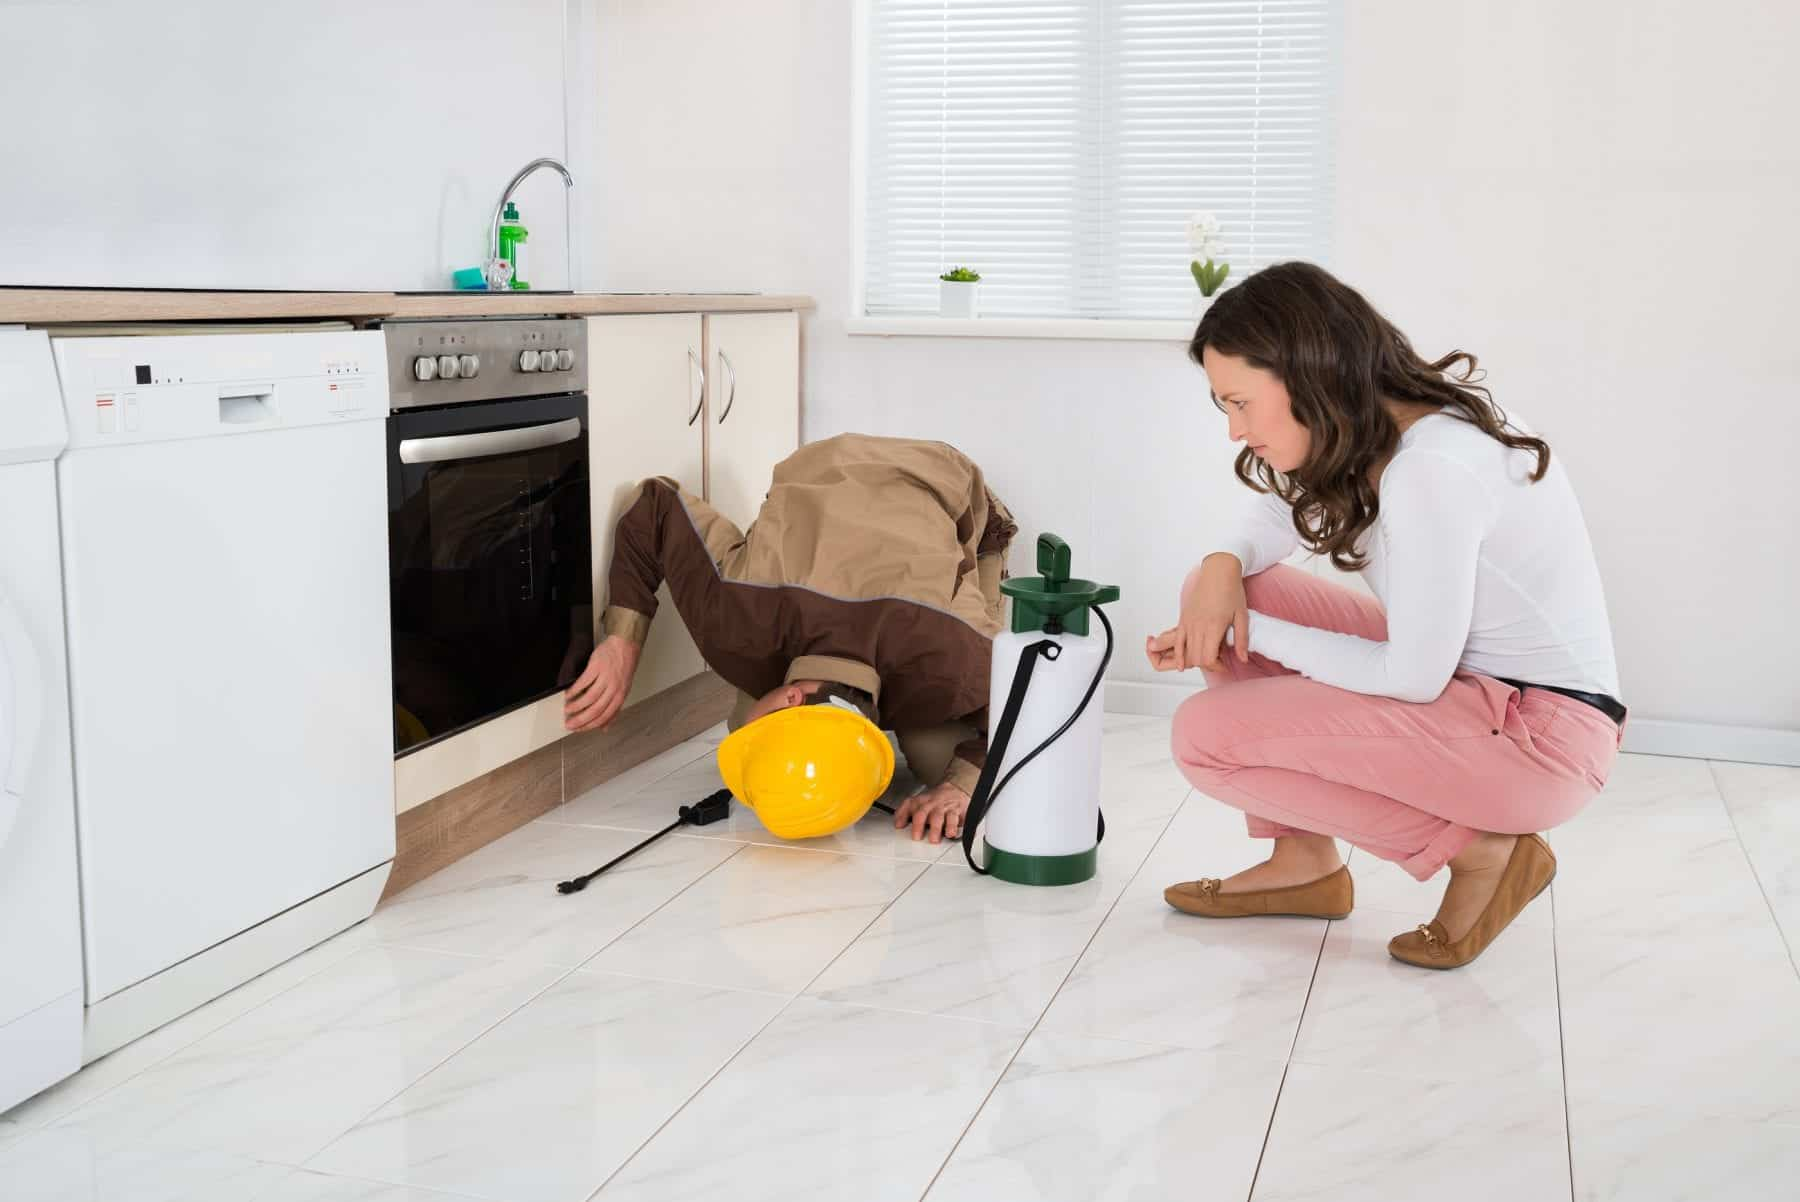 Young Woman And Worker With Pesticide Sprayer In Kitchen At Home